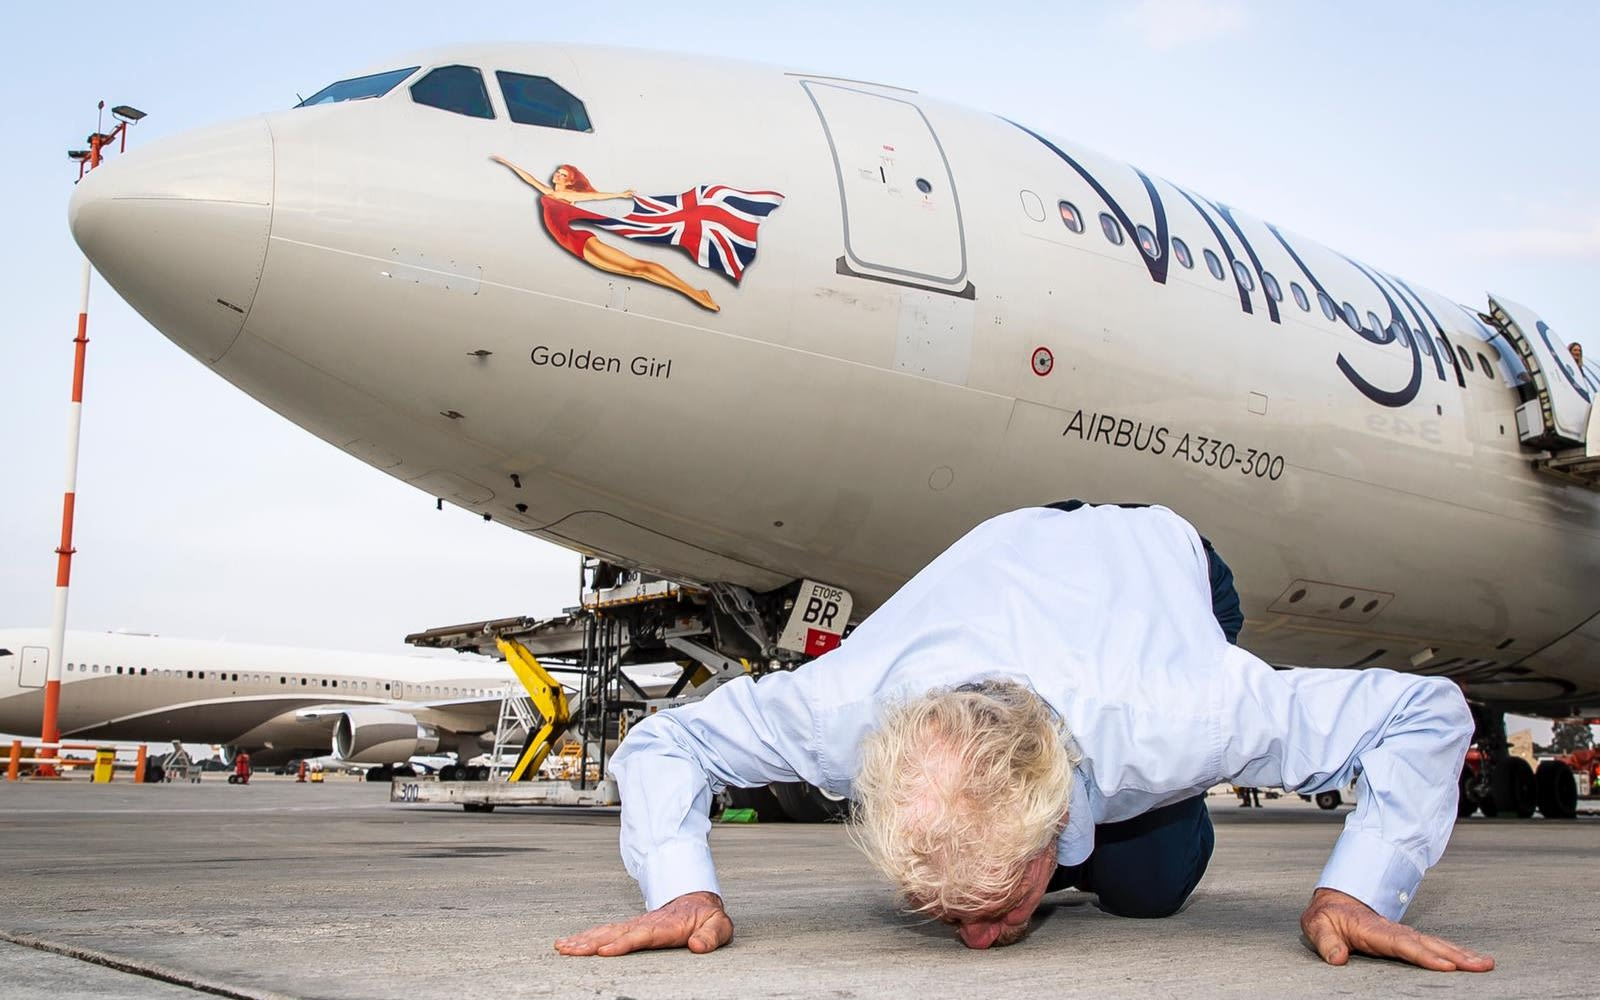 Richard Branson kisses the ground in front of a plane